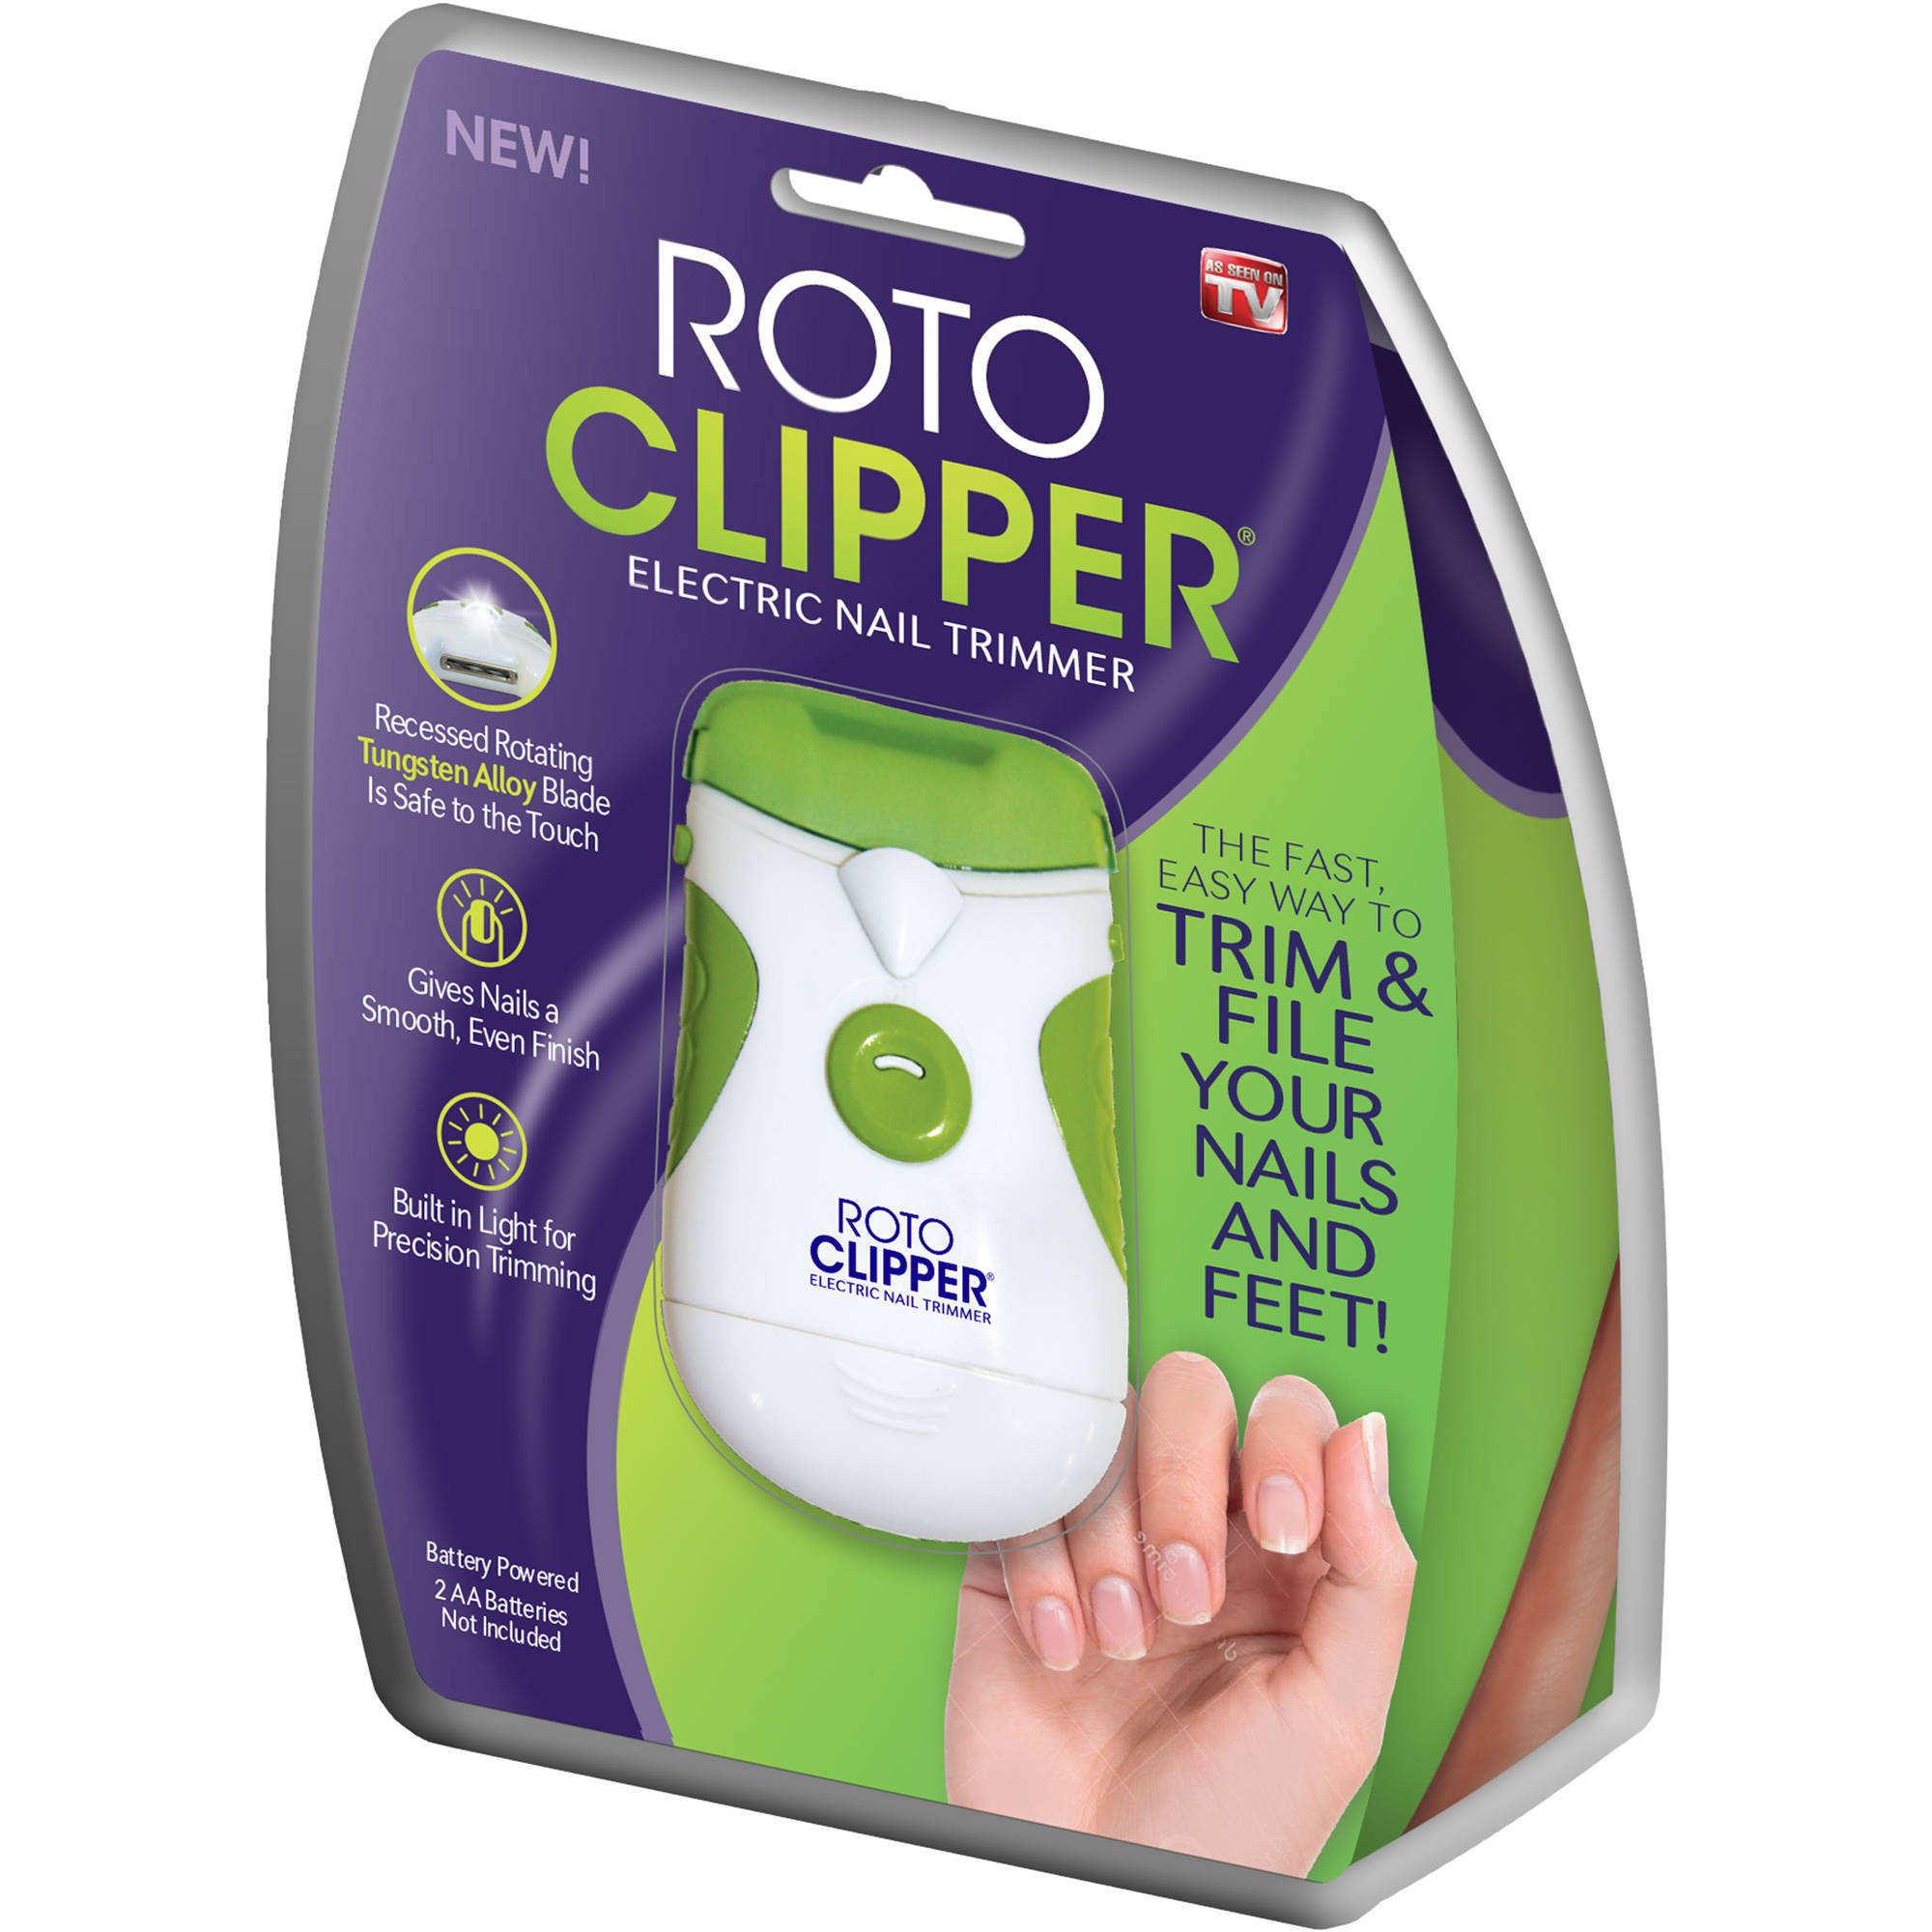 Roto Clipper Electronic Nail Trimmer